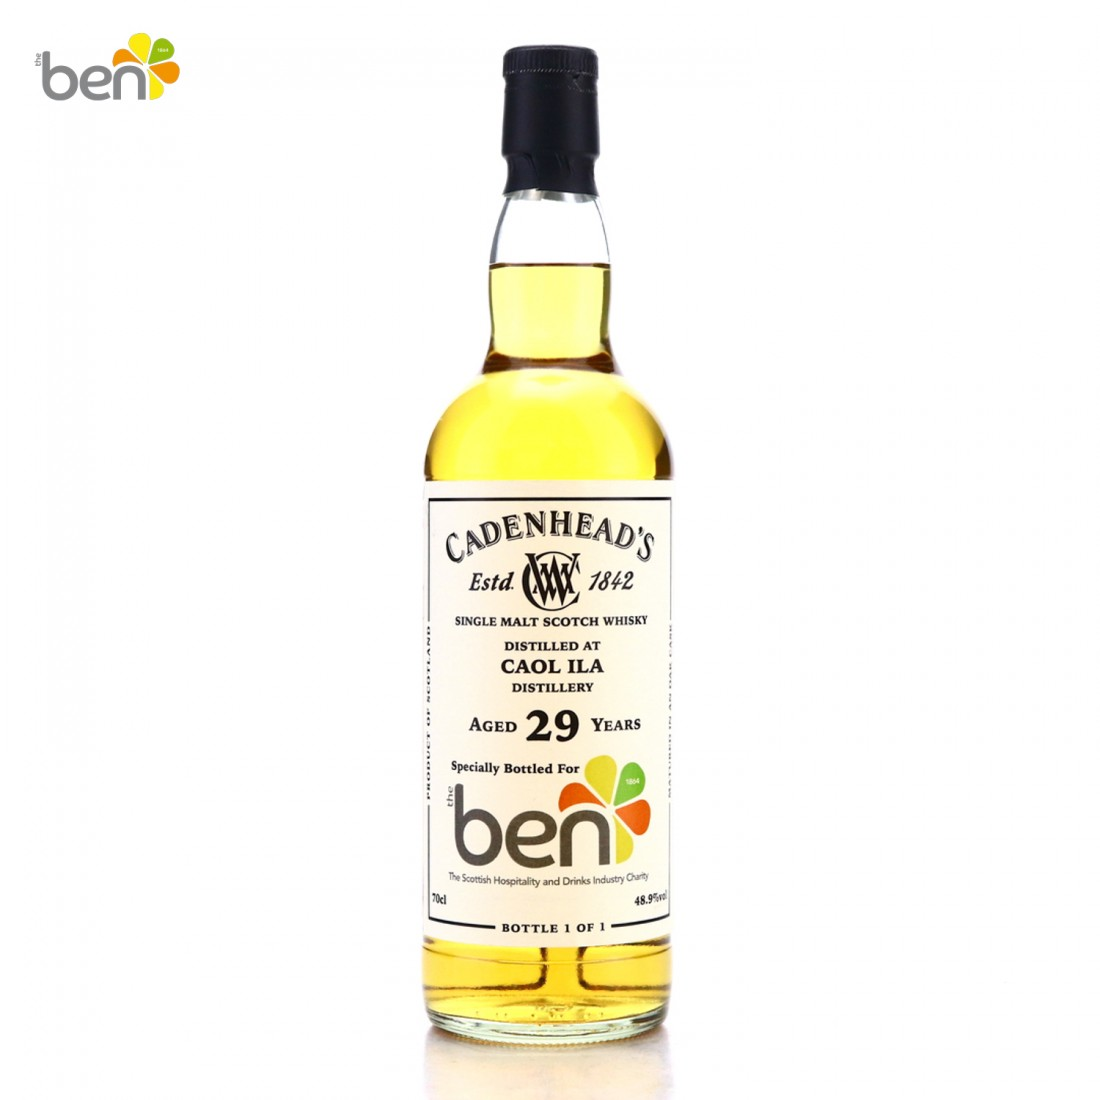 Caol Ila 29 Year Old Cadenhead's for The Ben - Charity Lot